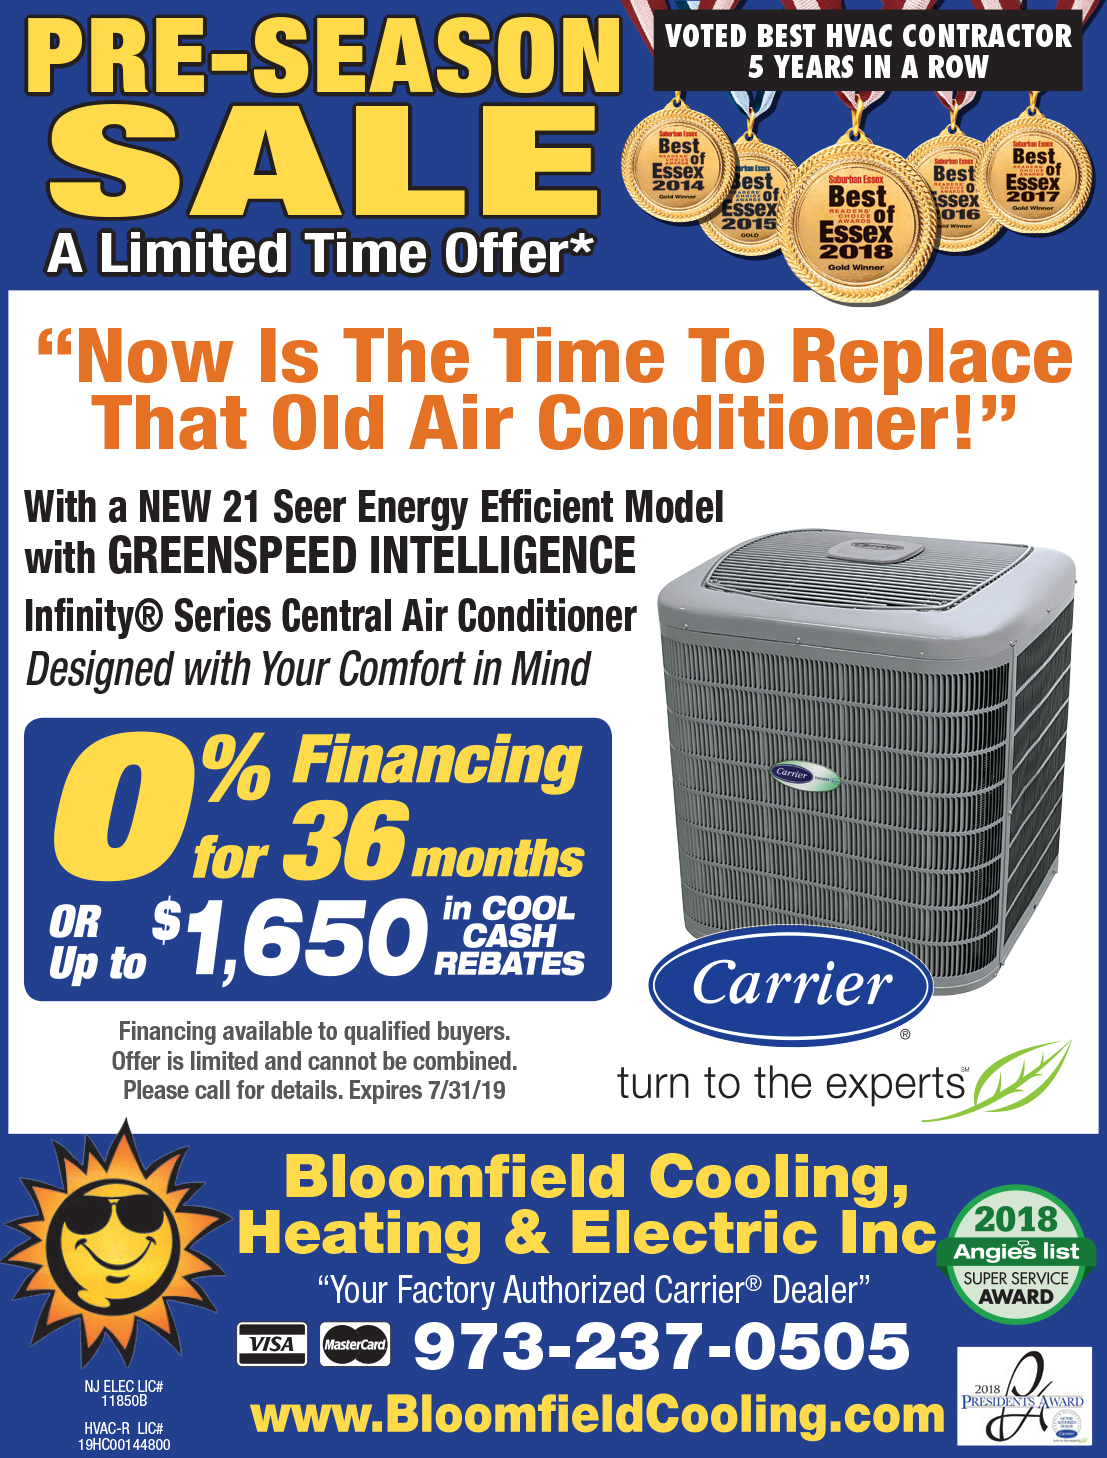 A/C Installation Sale - Bloomfield Cooling, Heating & Electric